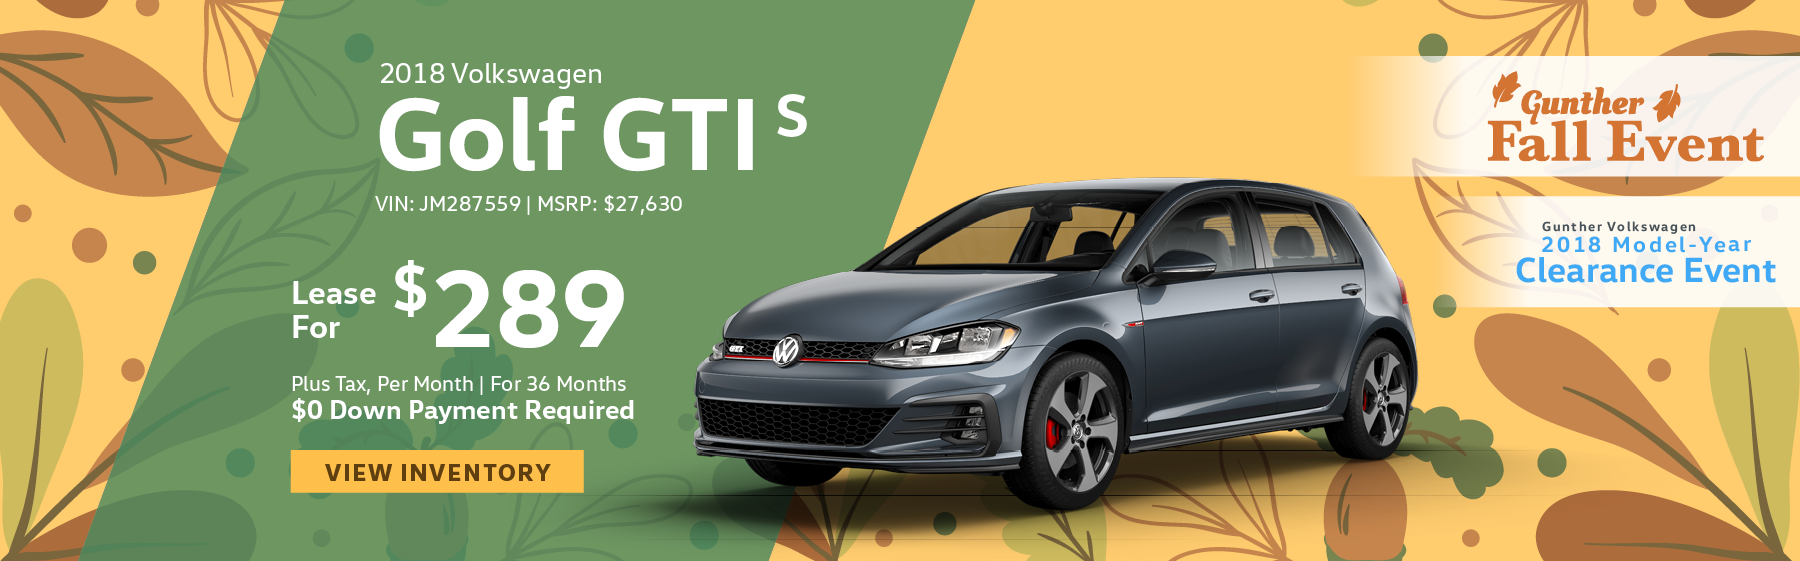 Lease the 2018 Volkswagen Golf GTI S for $289 plus tax for 36 months. $0 Down payment required.